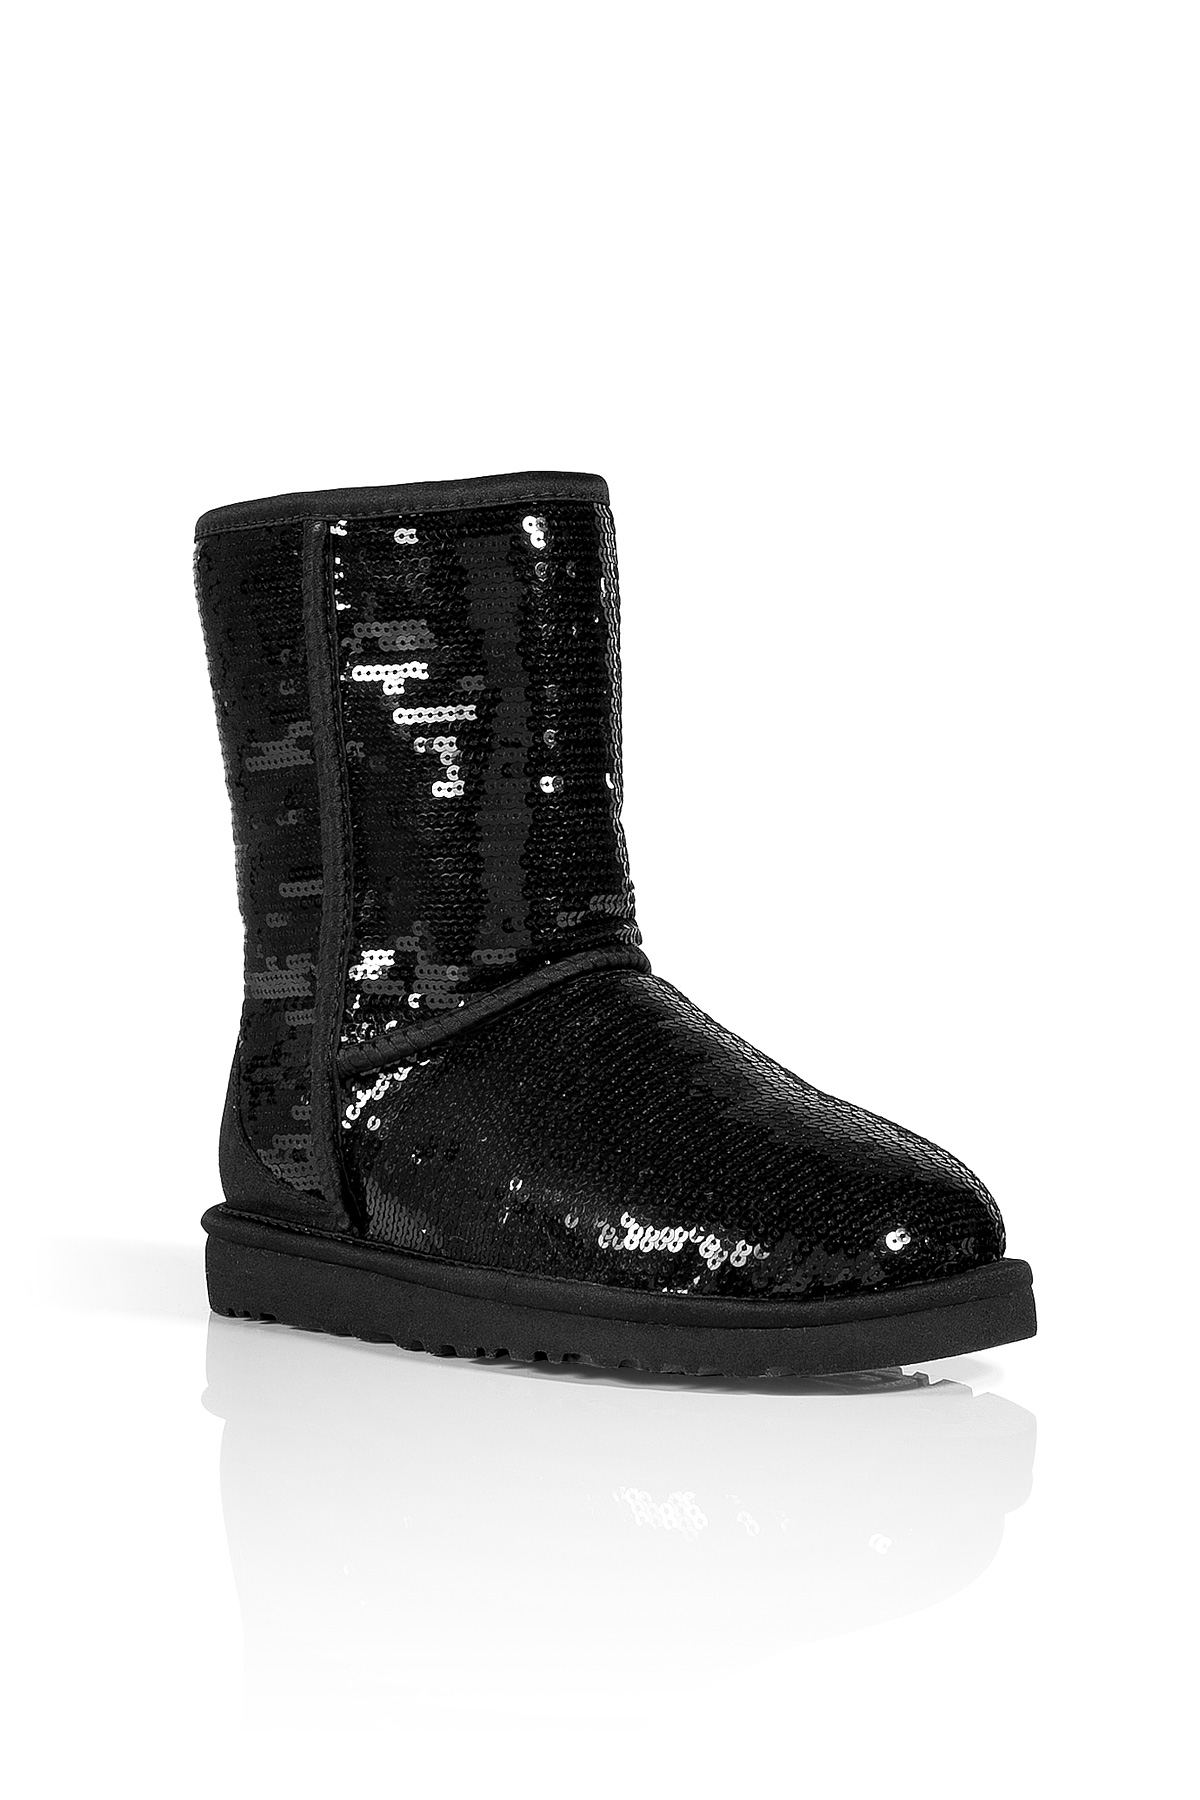 lyst ugg black sequin classic short sparkles boots in black. Black Bedroom Furniture Sets. Home Design Ideas